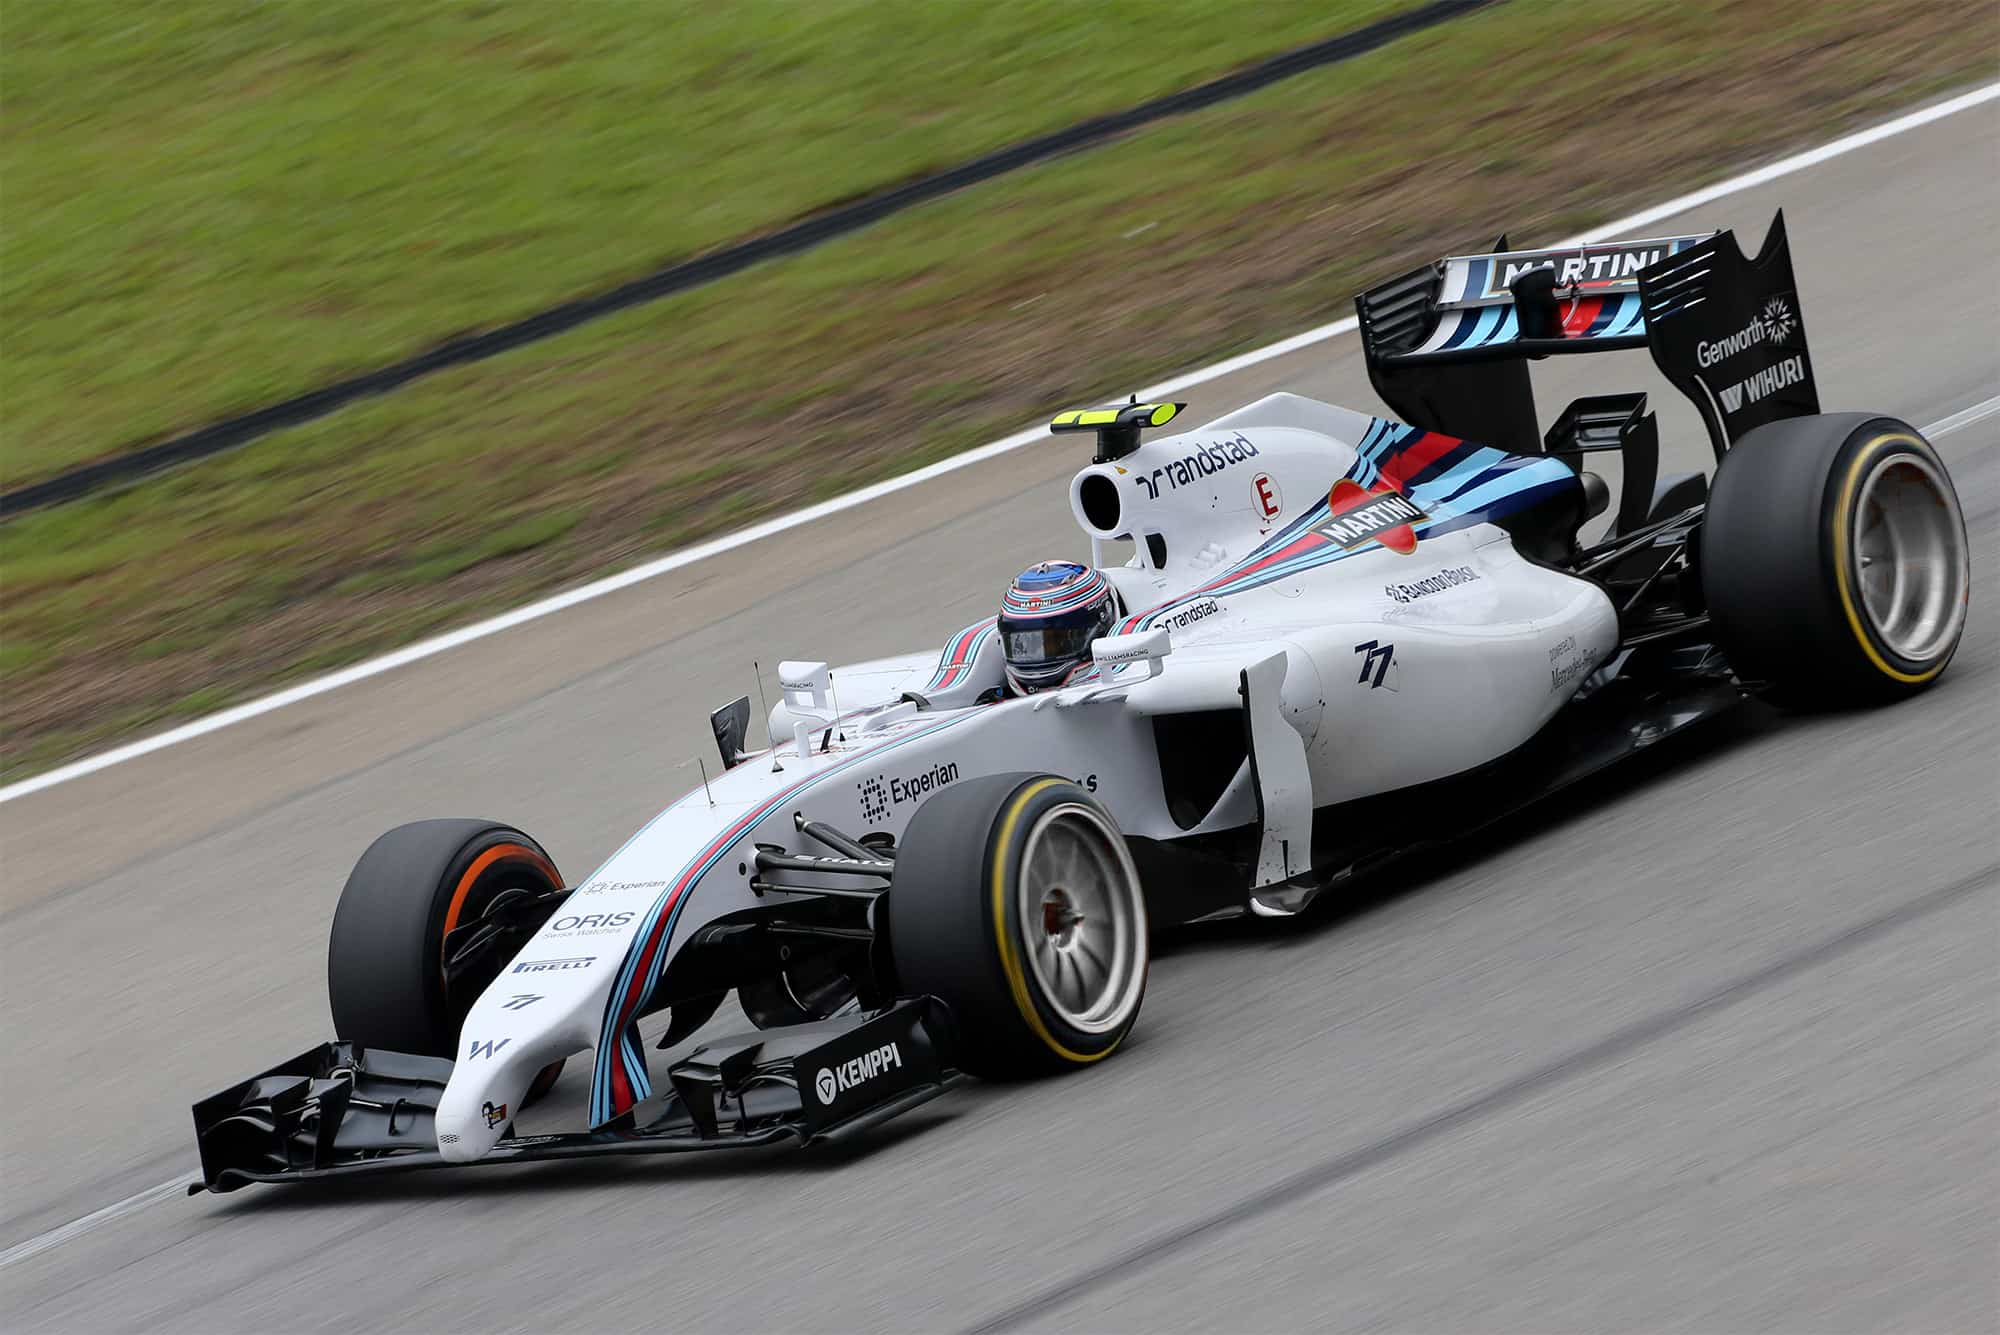 Bottas Williams F1 car 18 inch wheels